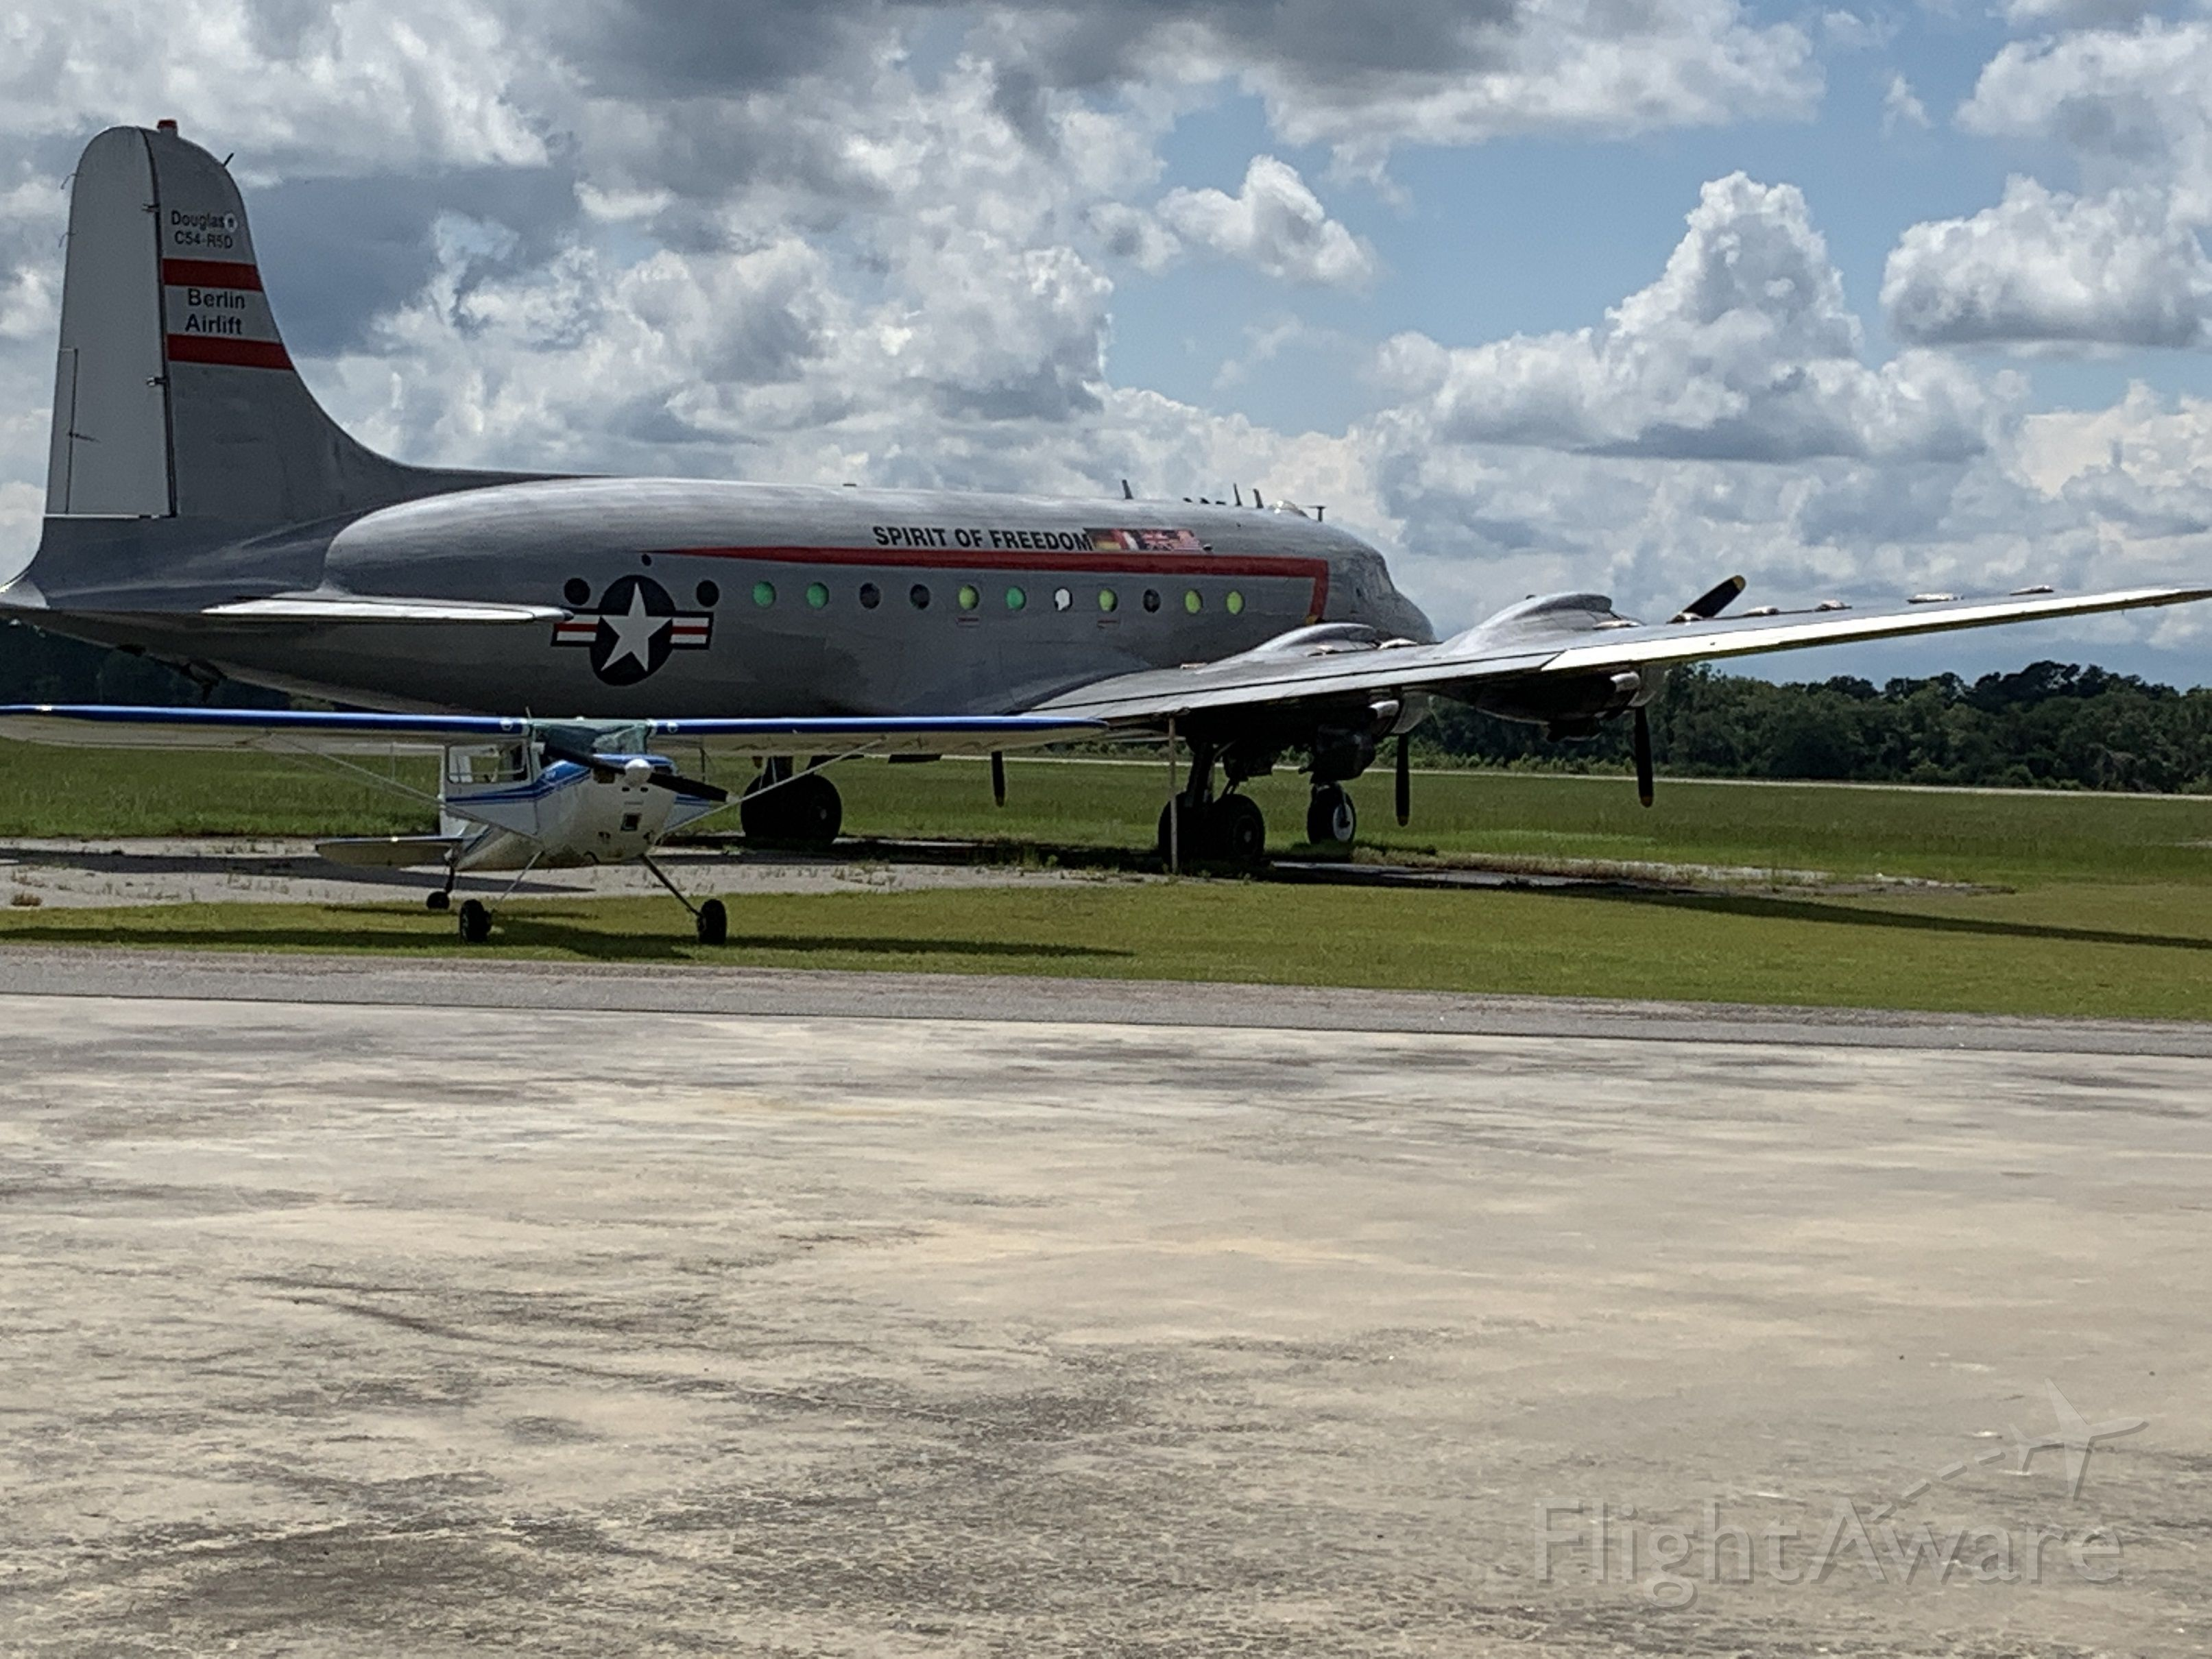 N500EJ — - C-54 that was at Walterboro, SC for ADS-B installation and damaged by 2020 tornados. This is a Berlin airlift museum, not sure if it actually participated.